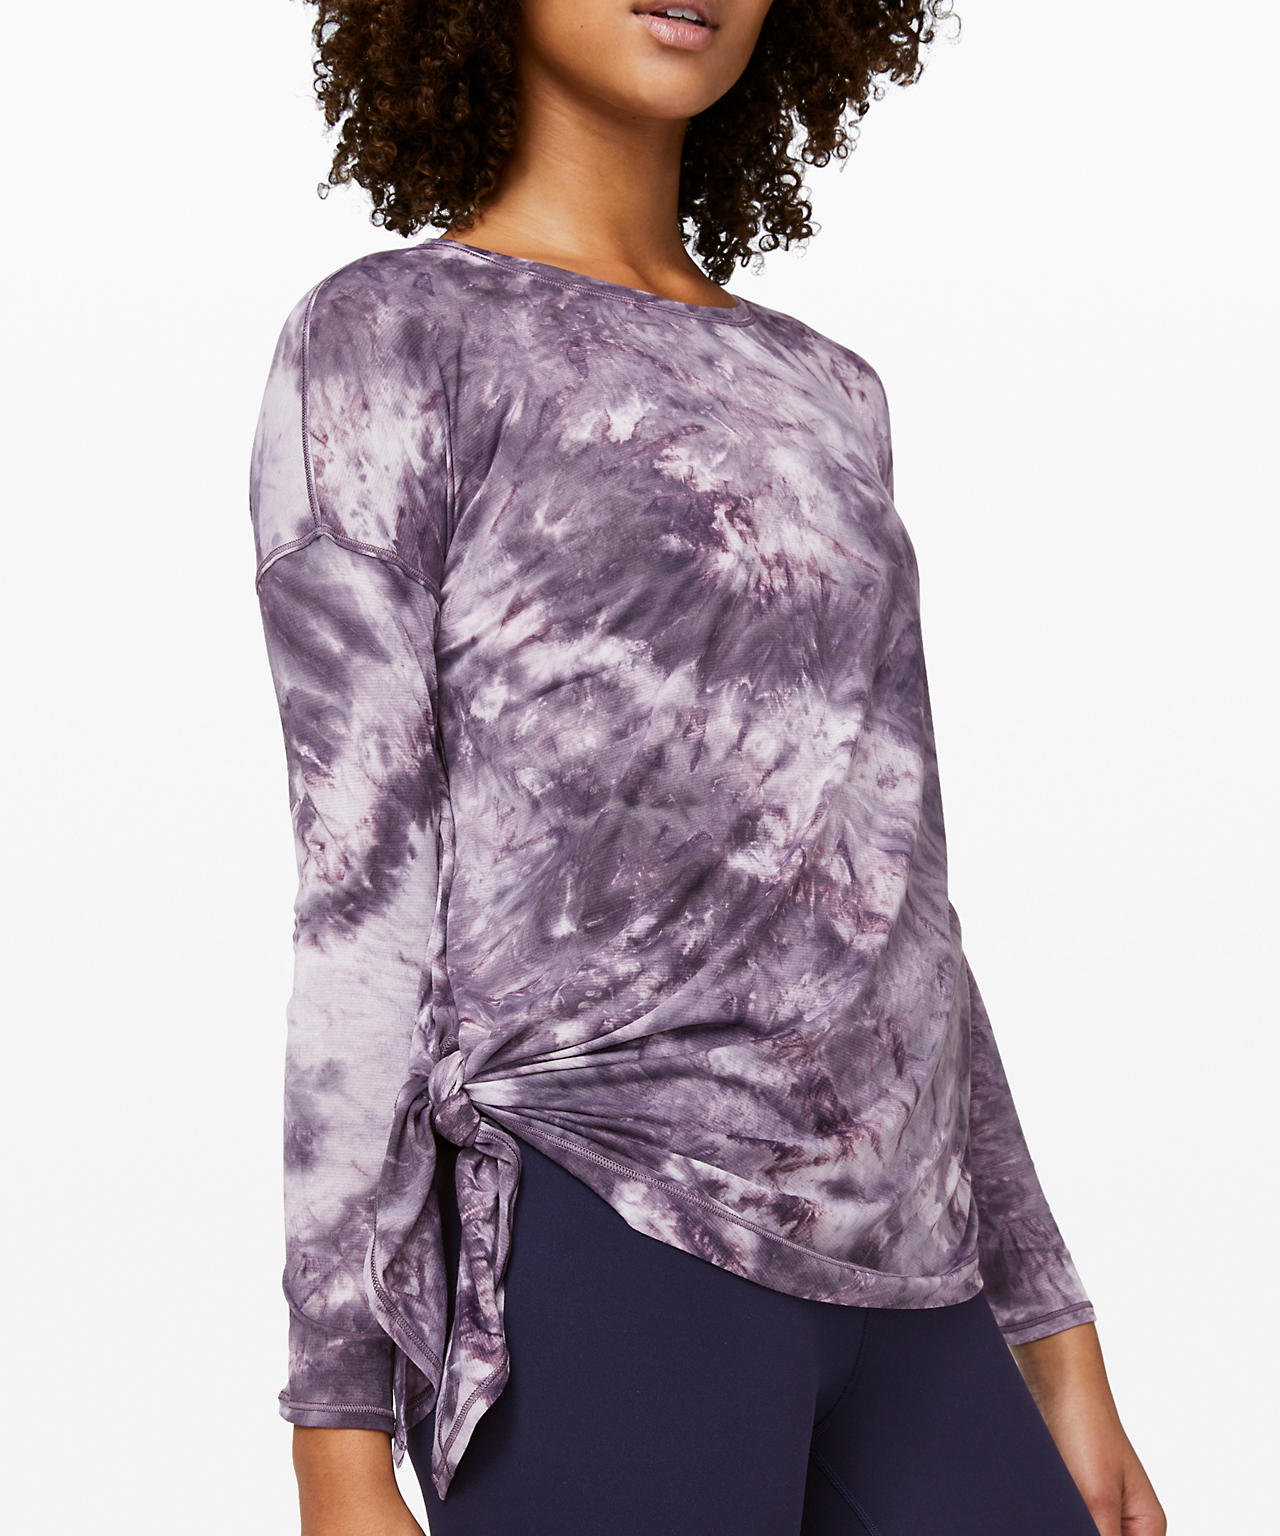 To The Point Long Sleeve, Lululemon